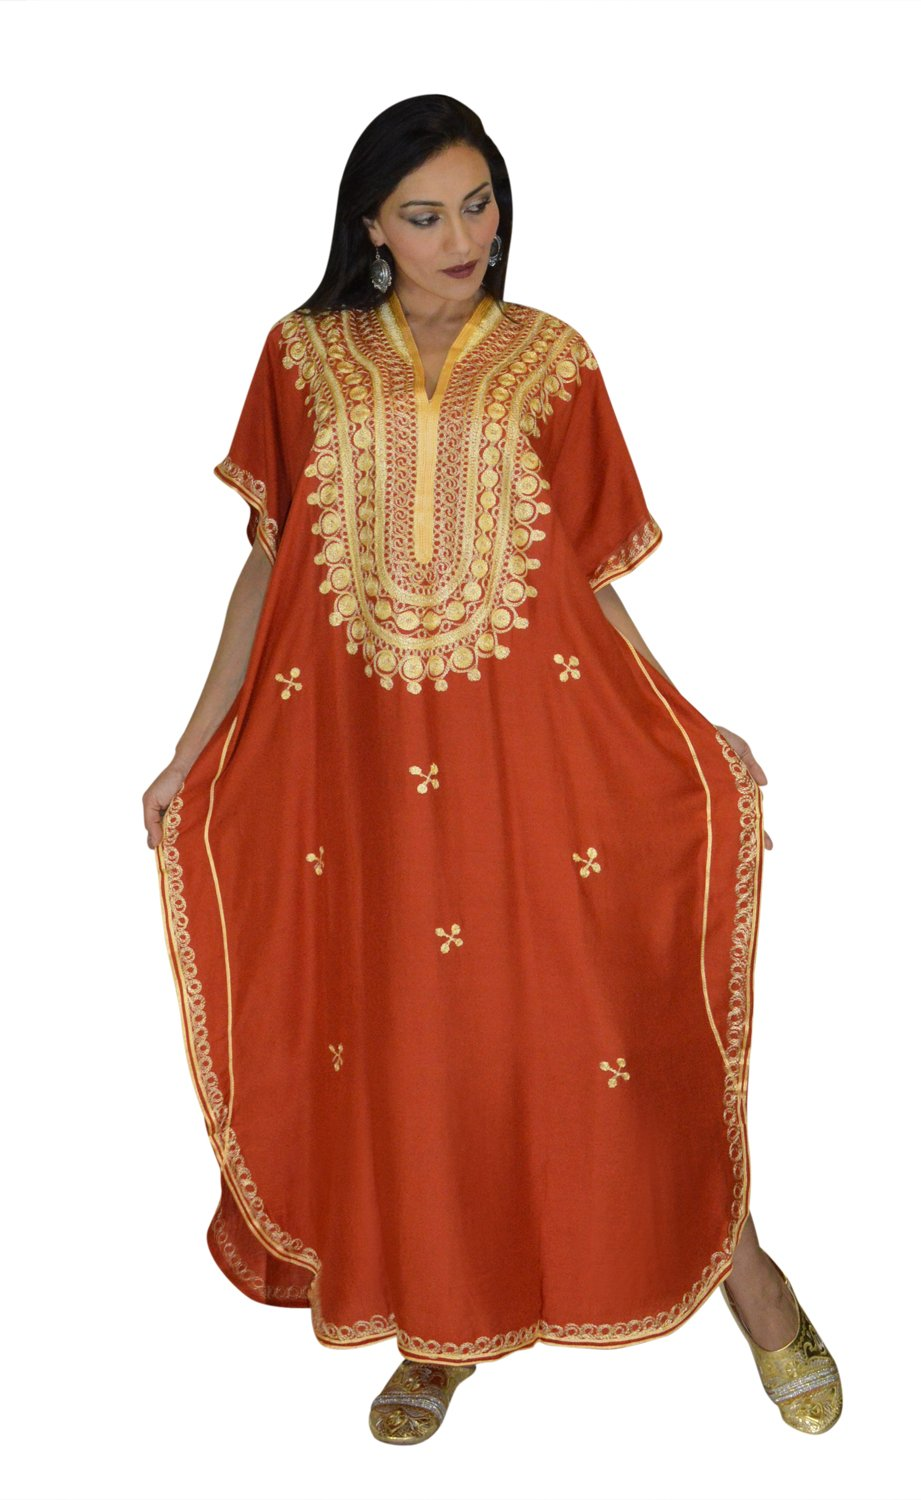 Moroccan Caftan Hand Made Top Quality Breathable Cotton with Gold Hand Embroidery Long Length Orange